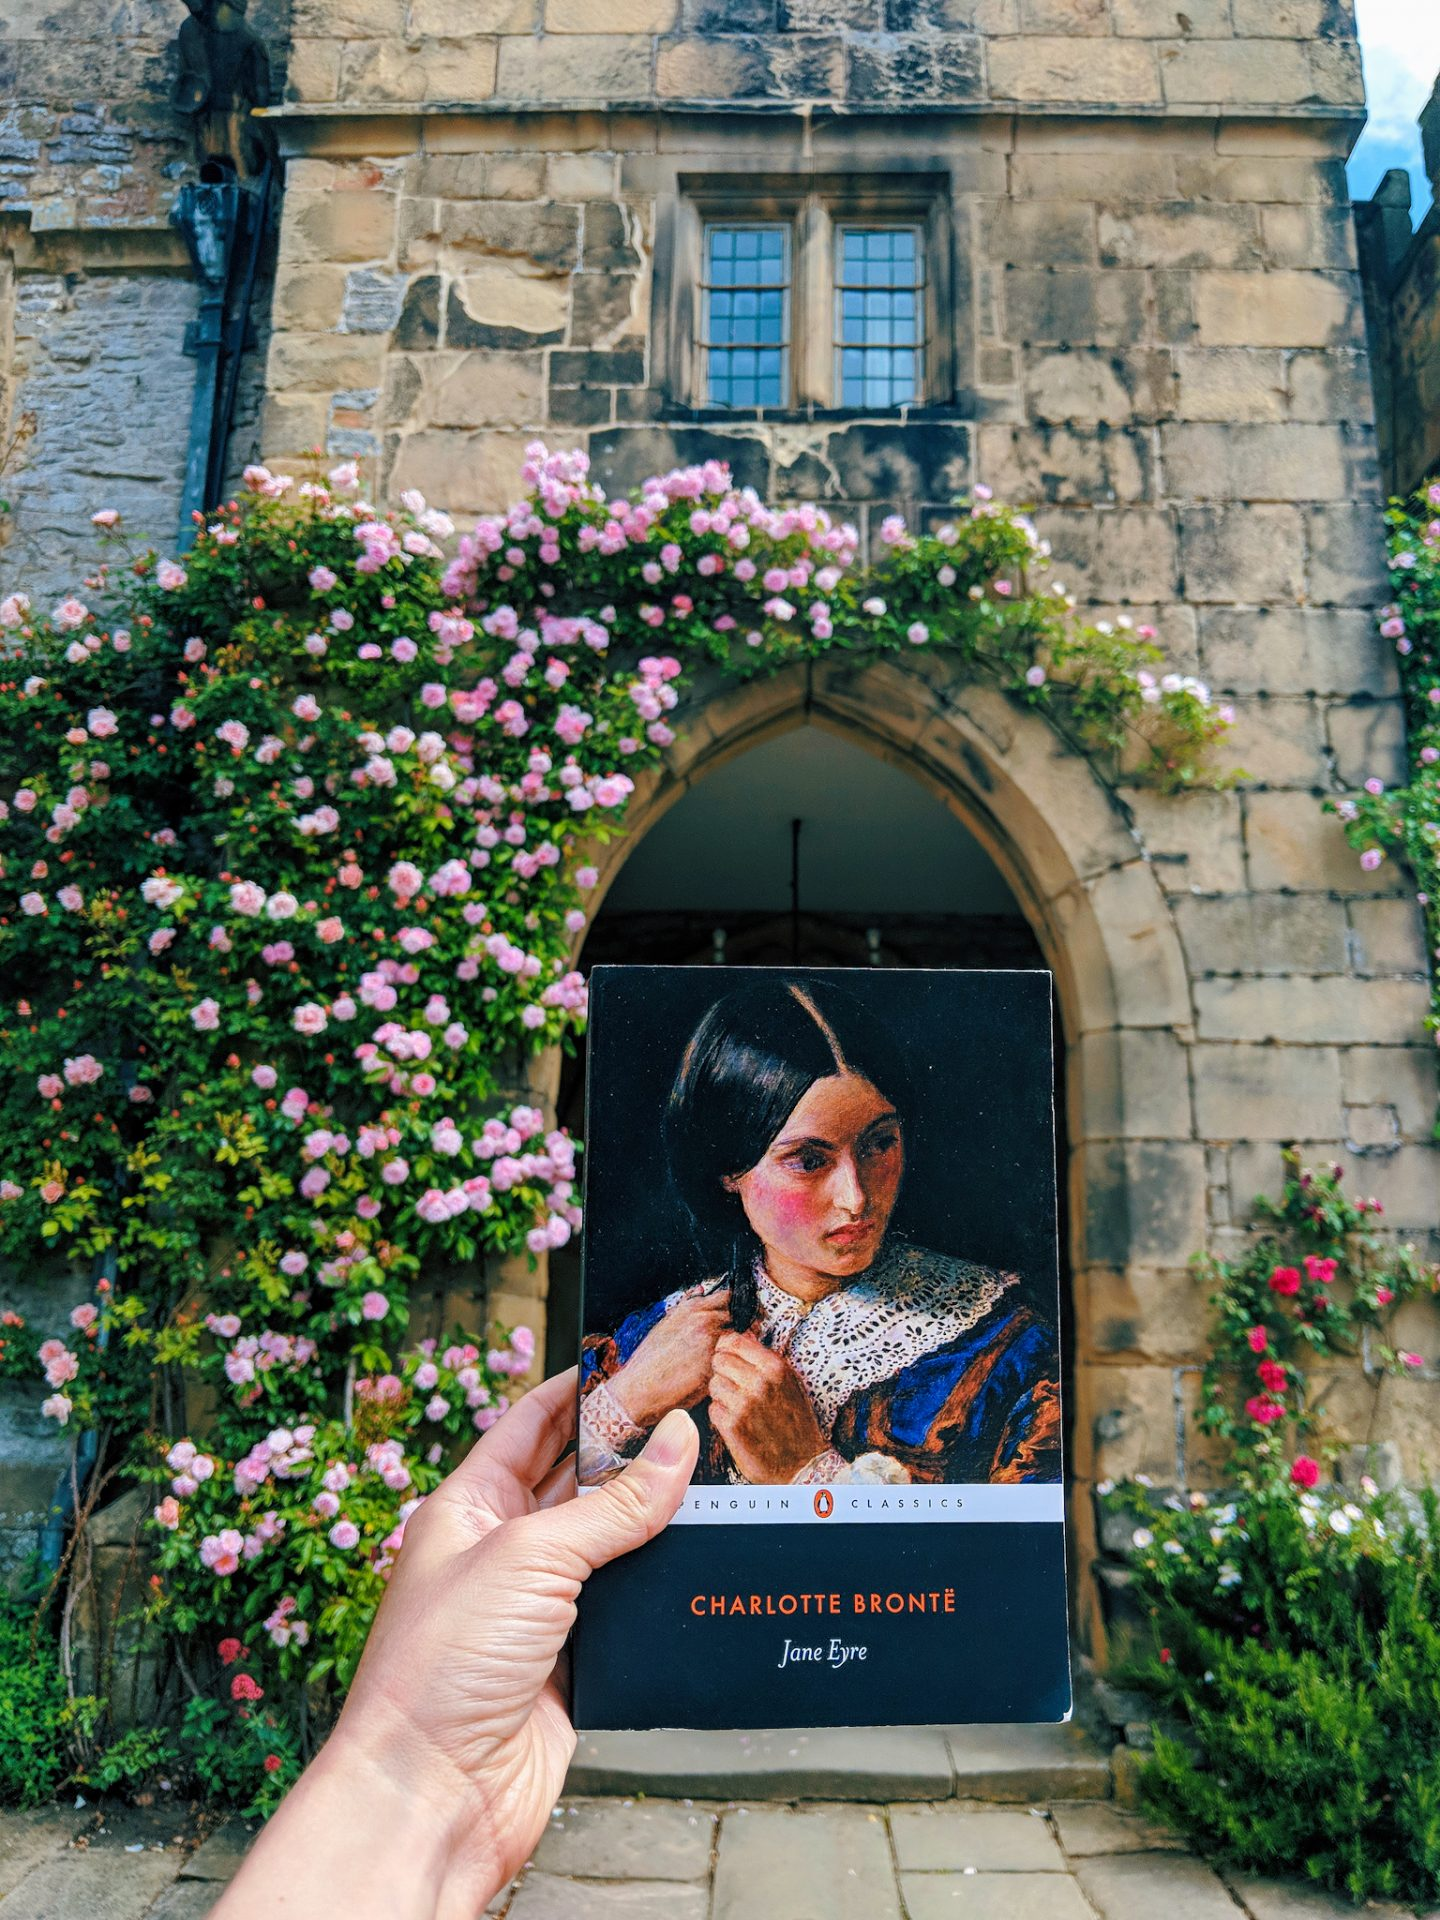 A hand holding up a copy of Jane Eyre by Charlotte Bronte outside Haddon Hall Derbyshire UK